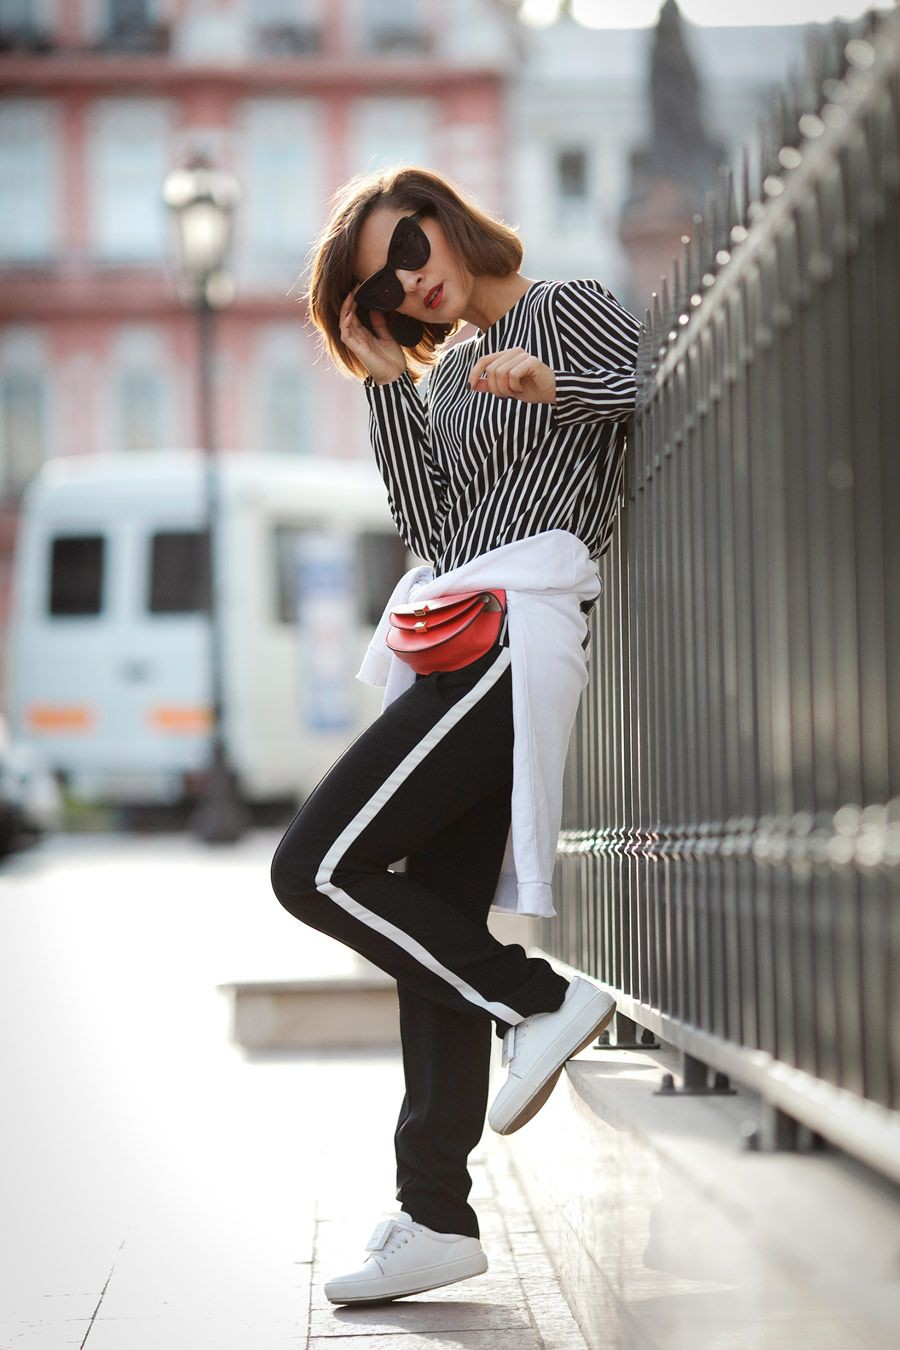 Evening outfit ideas for sport style outfit, Fanny pack